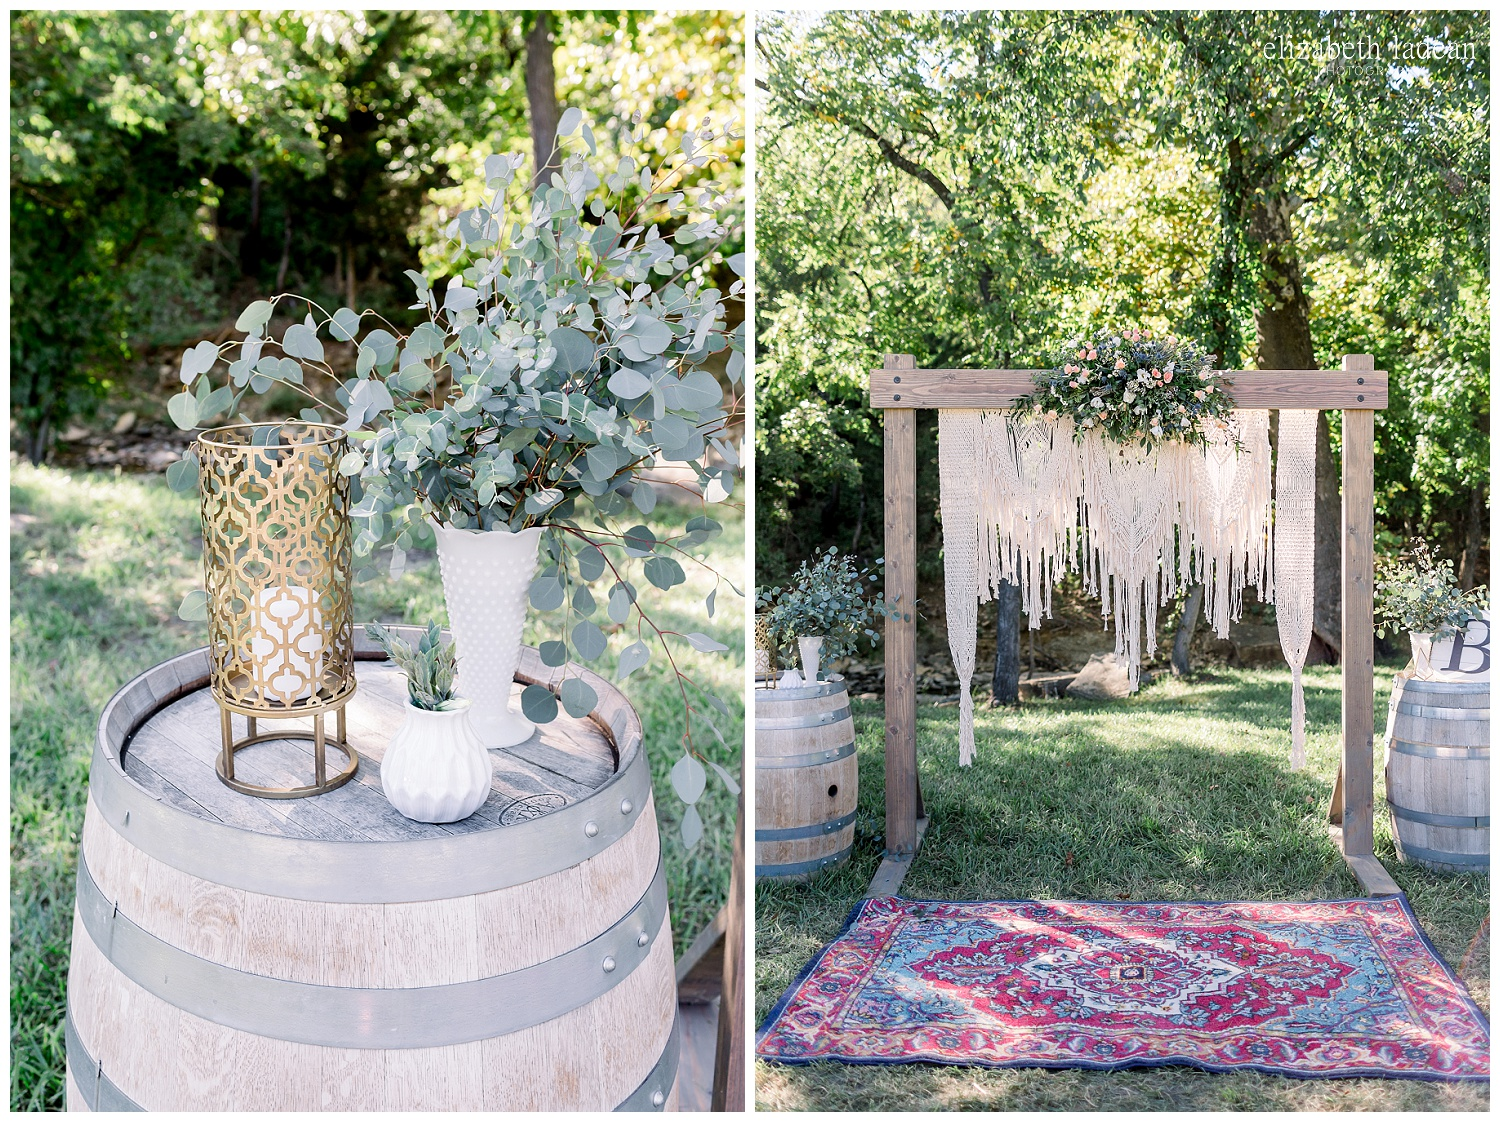 Willow-Creek-Blush-and-Blues-Outdoor-Wedding-Photography-S+Z2018-elizabeth-ladean-photography-photo_0563.jpg